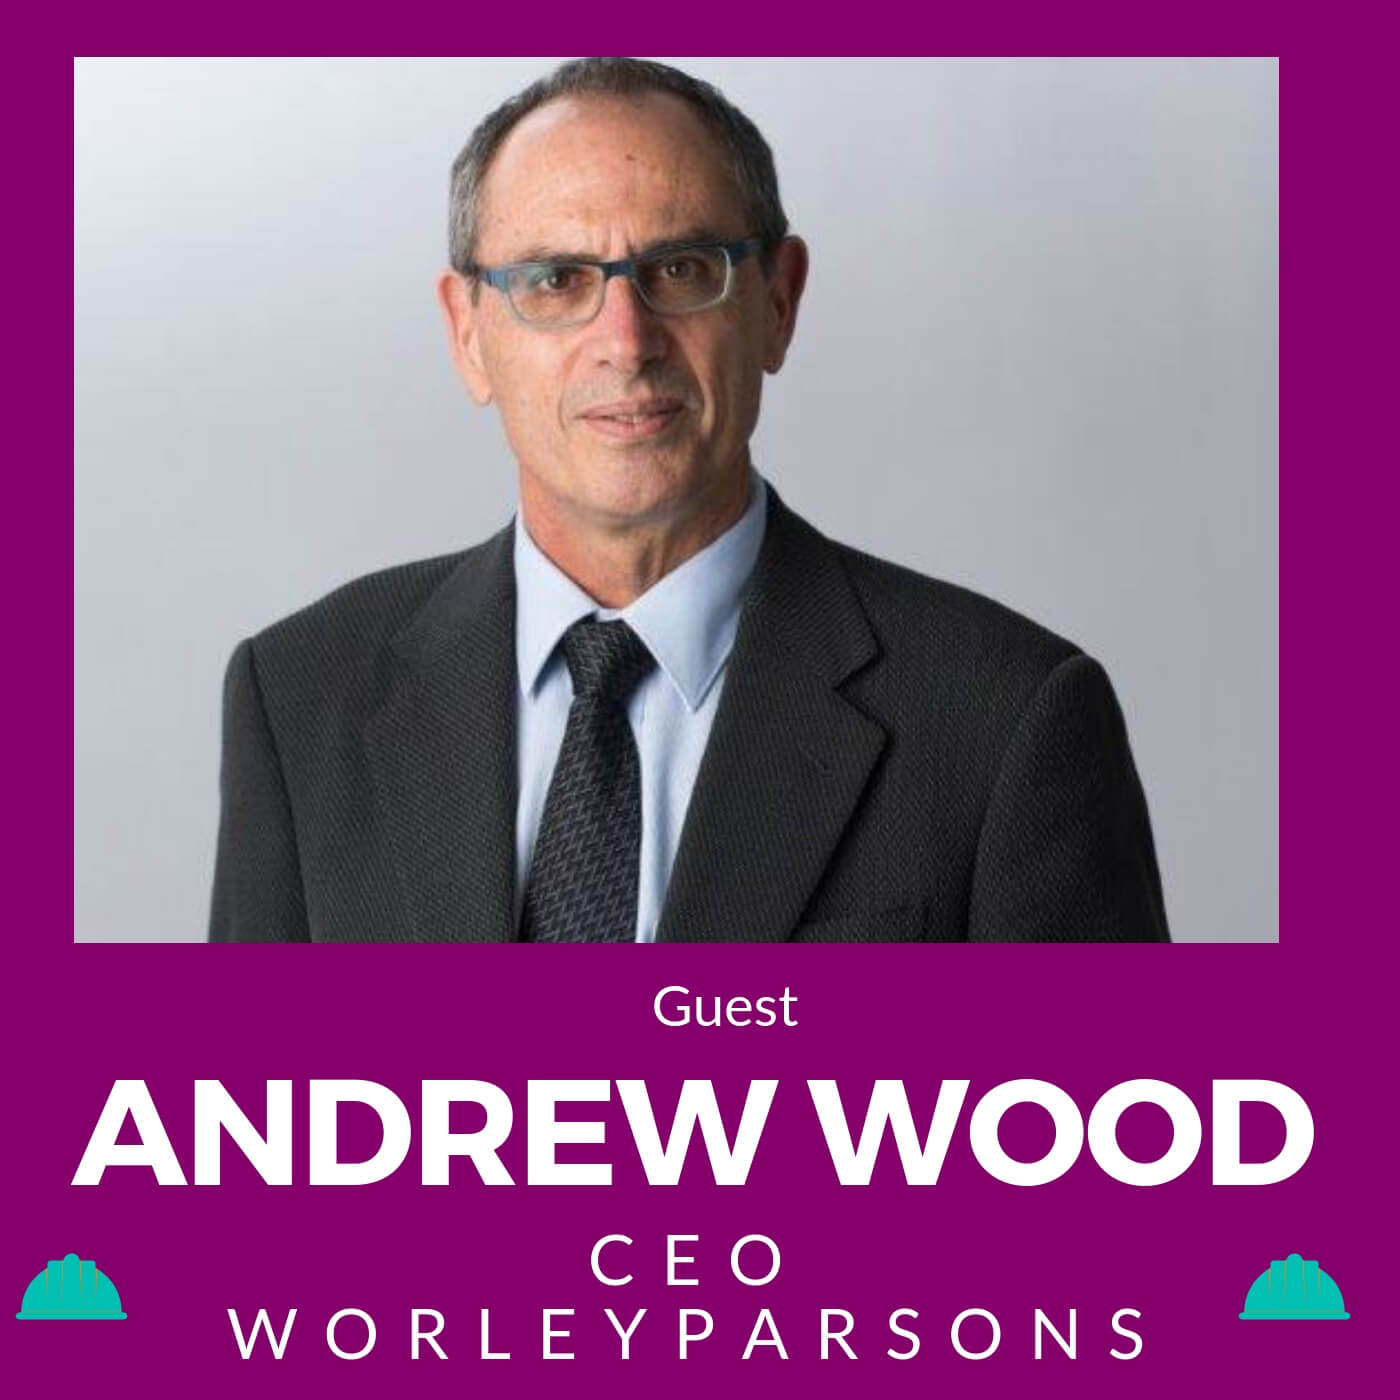 Helen-OKeefe-Talks-Safety-Worley-Parsons-CEO-Andrew-Wood